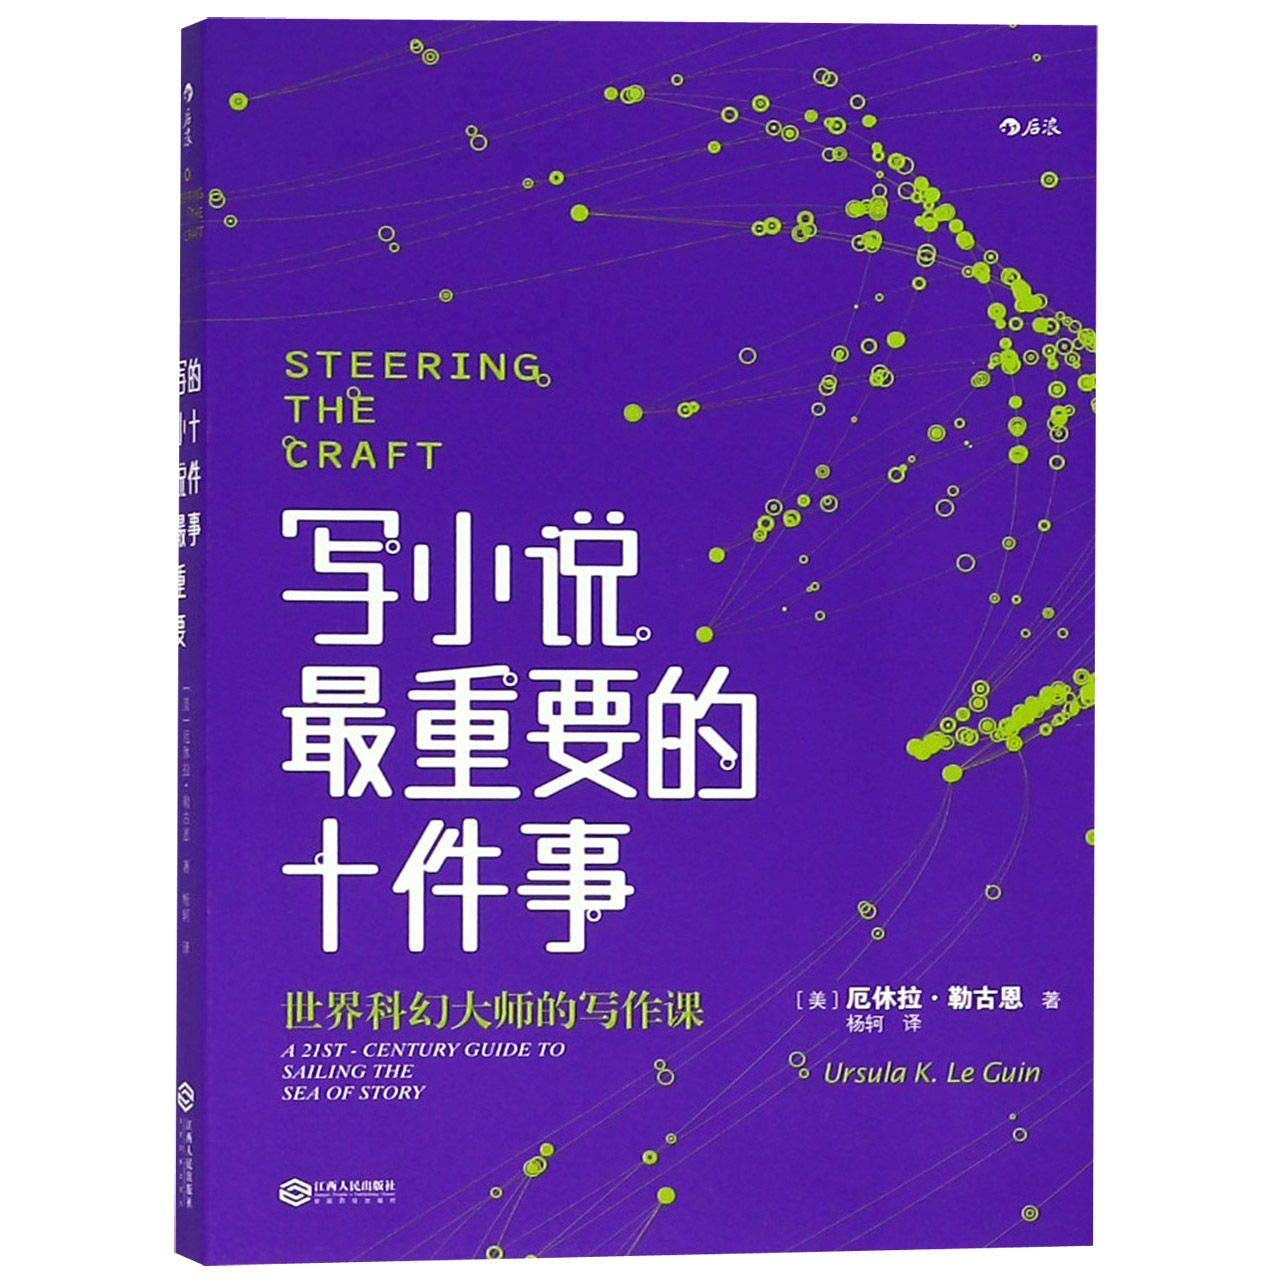 Steering the Craft (Chinese Edition) (Chinese) Paperback – December 1,  2018. by Ursula K. Le Guin ...